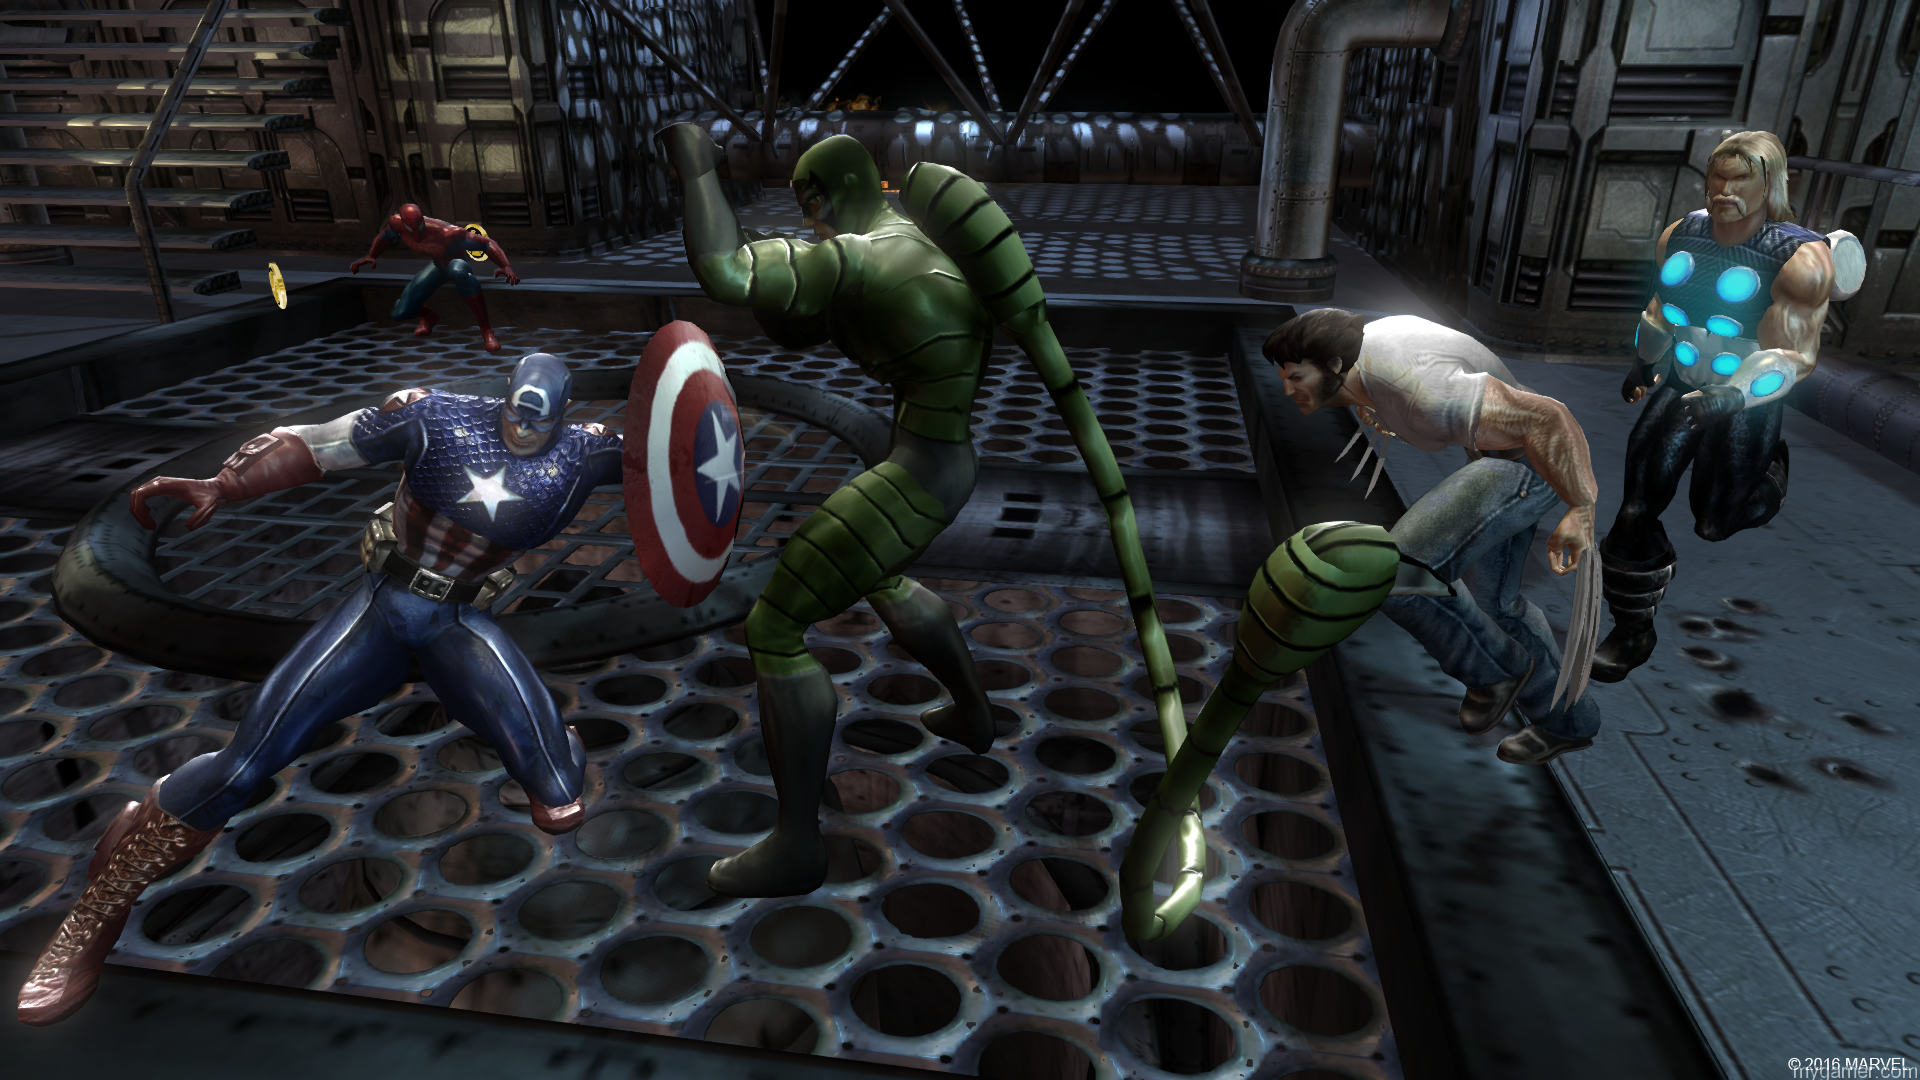 Marvel Ultimate Alliance_Screen 1 Both Marvel: Ultimate Alliance Games Are Now on PS4 and Xbox One Both Marvel: Ultimate Alliance Games Are Now on PS4 and Xbox One Marvel Ultimate Alliance Screen 1